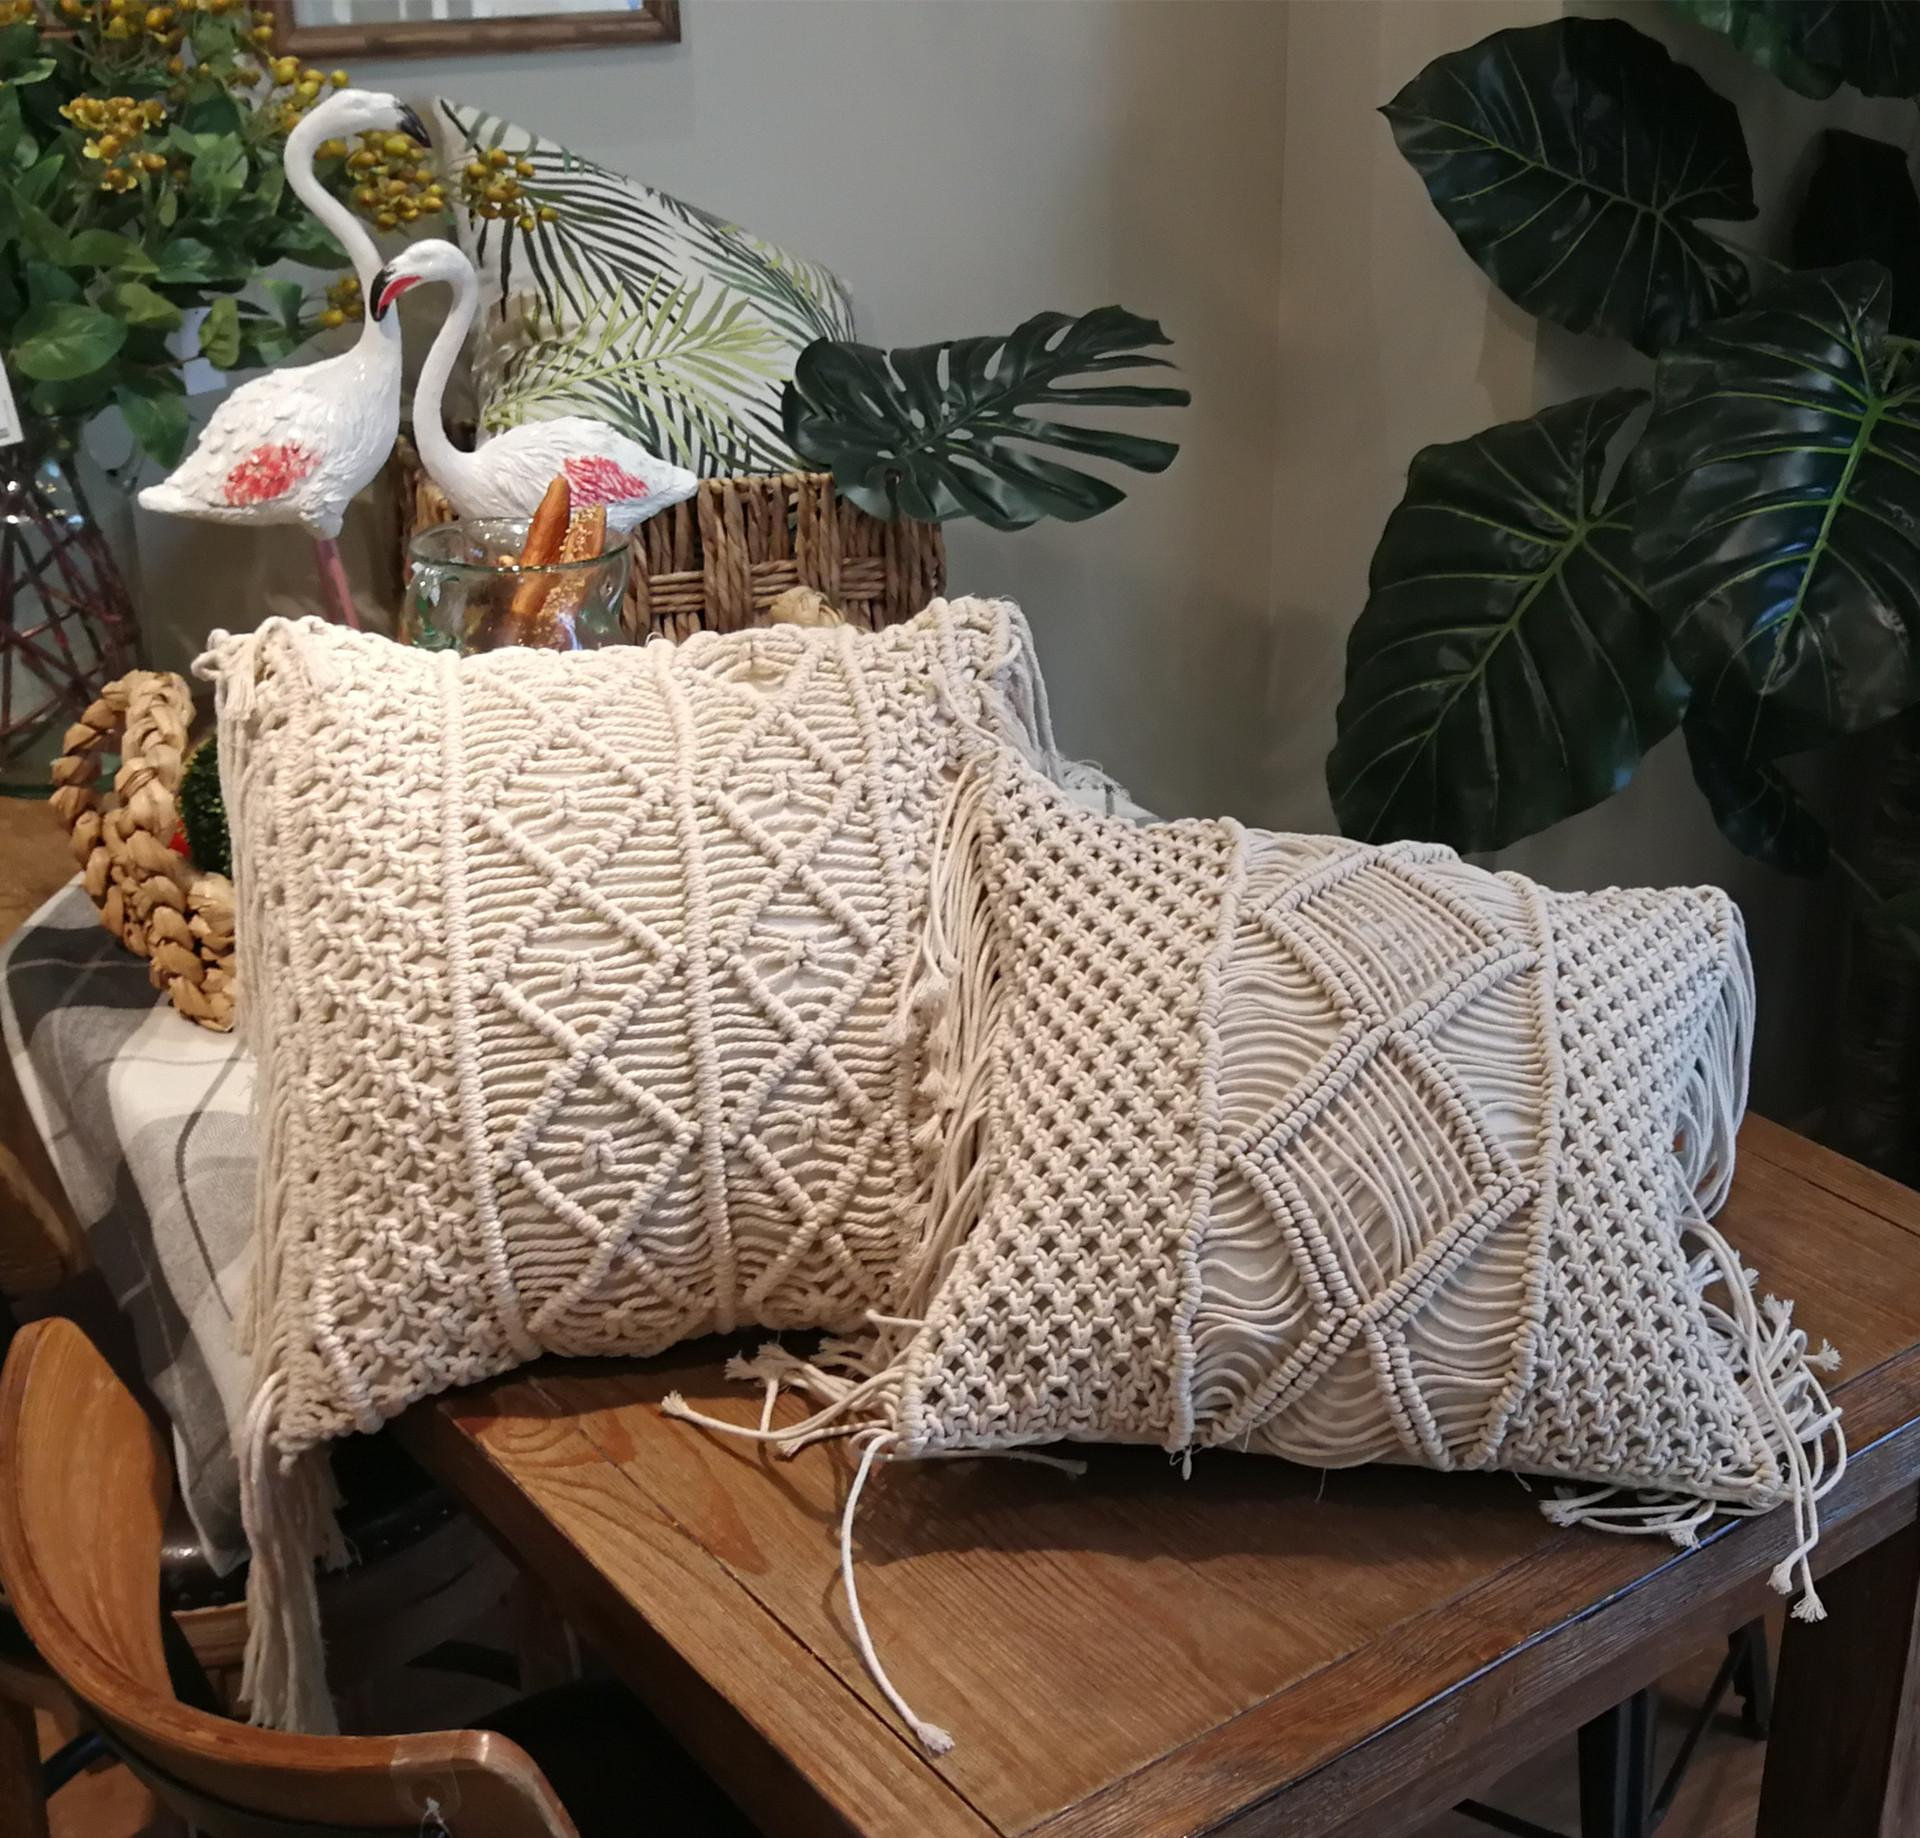 Boho Decorative Pillows Macrame Bed Throw Pillows Beige Zipper